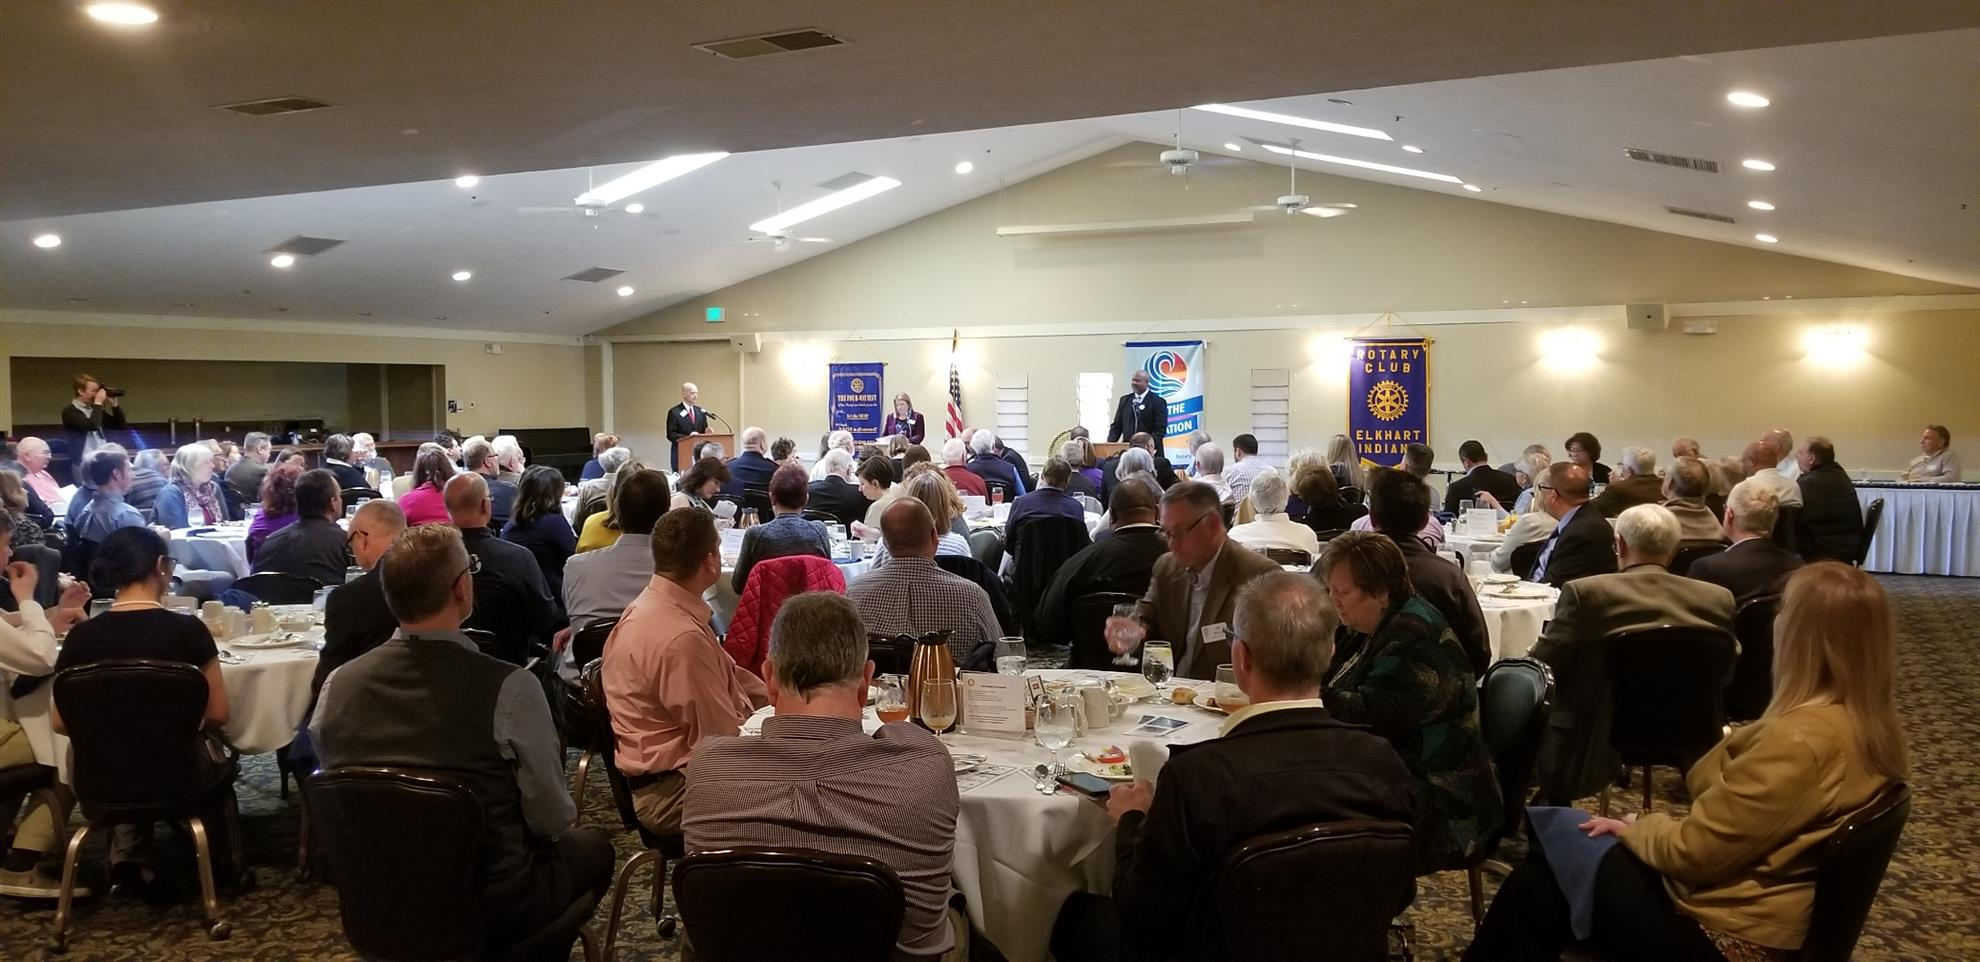 Elkhart Rotary Club Meeting April 15, 2019 | Rotary Club of Elkhart